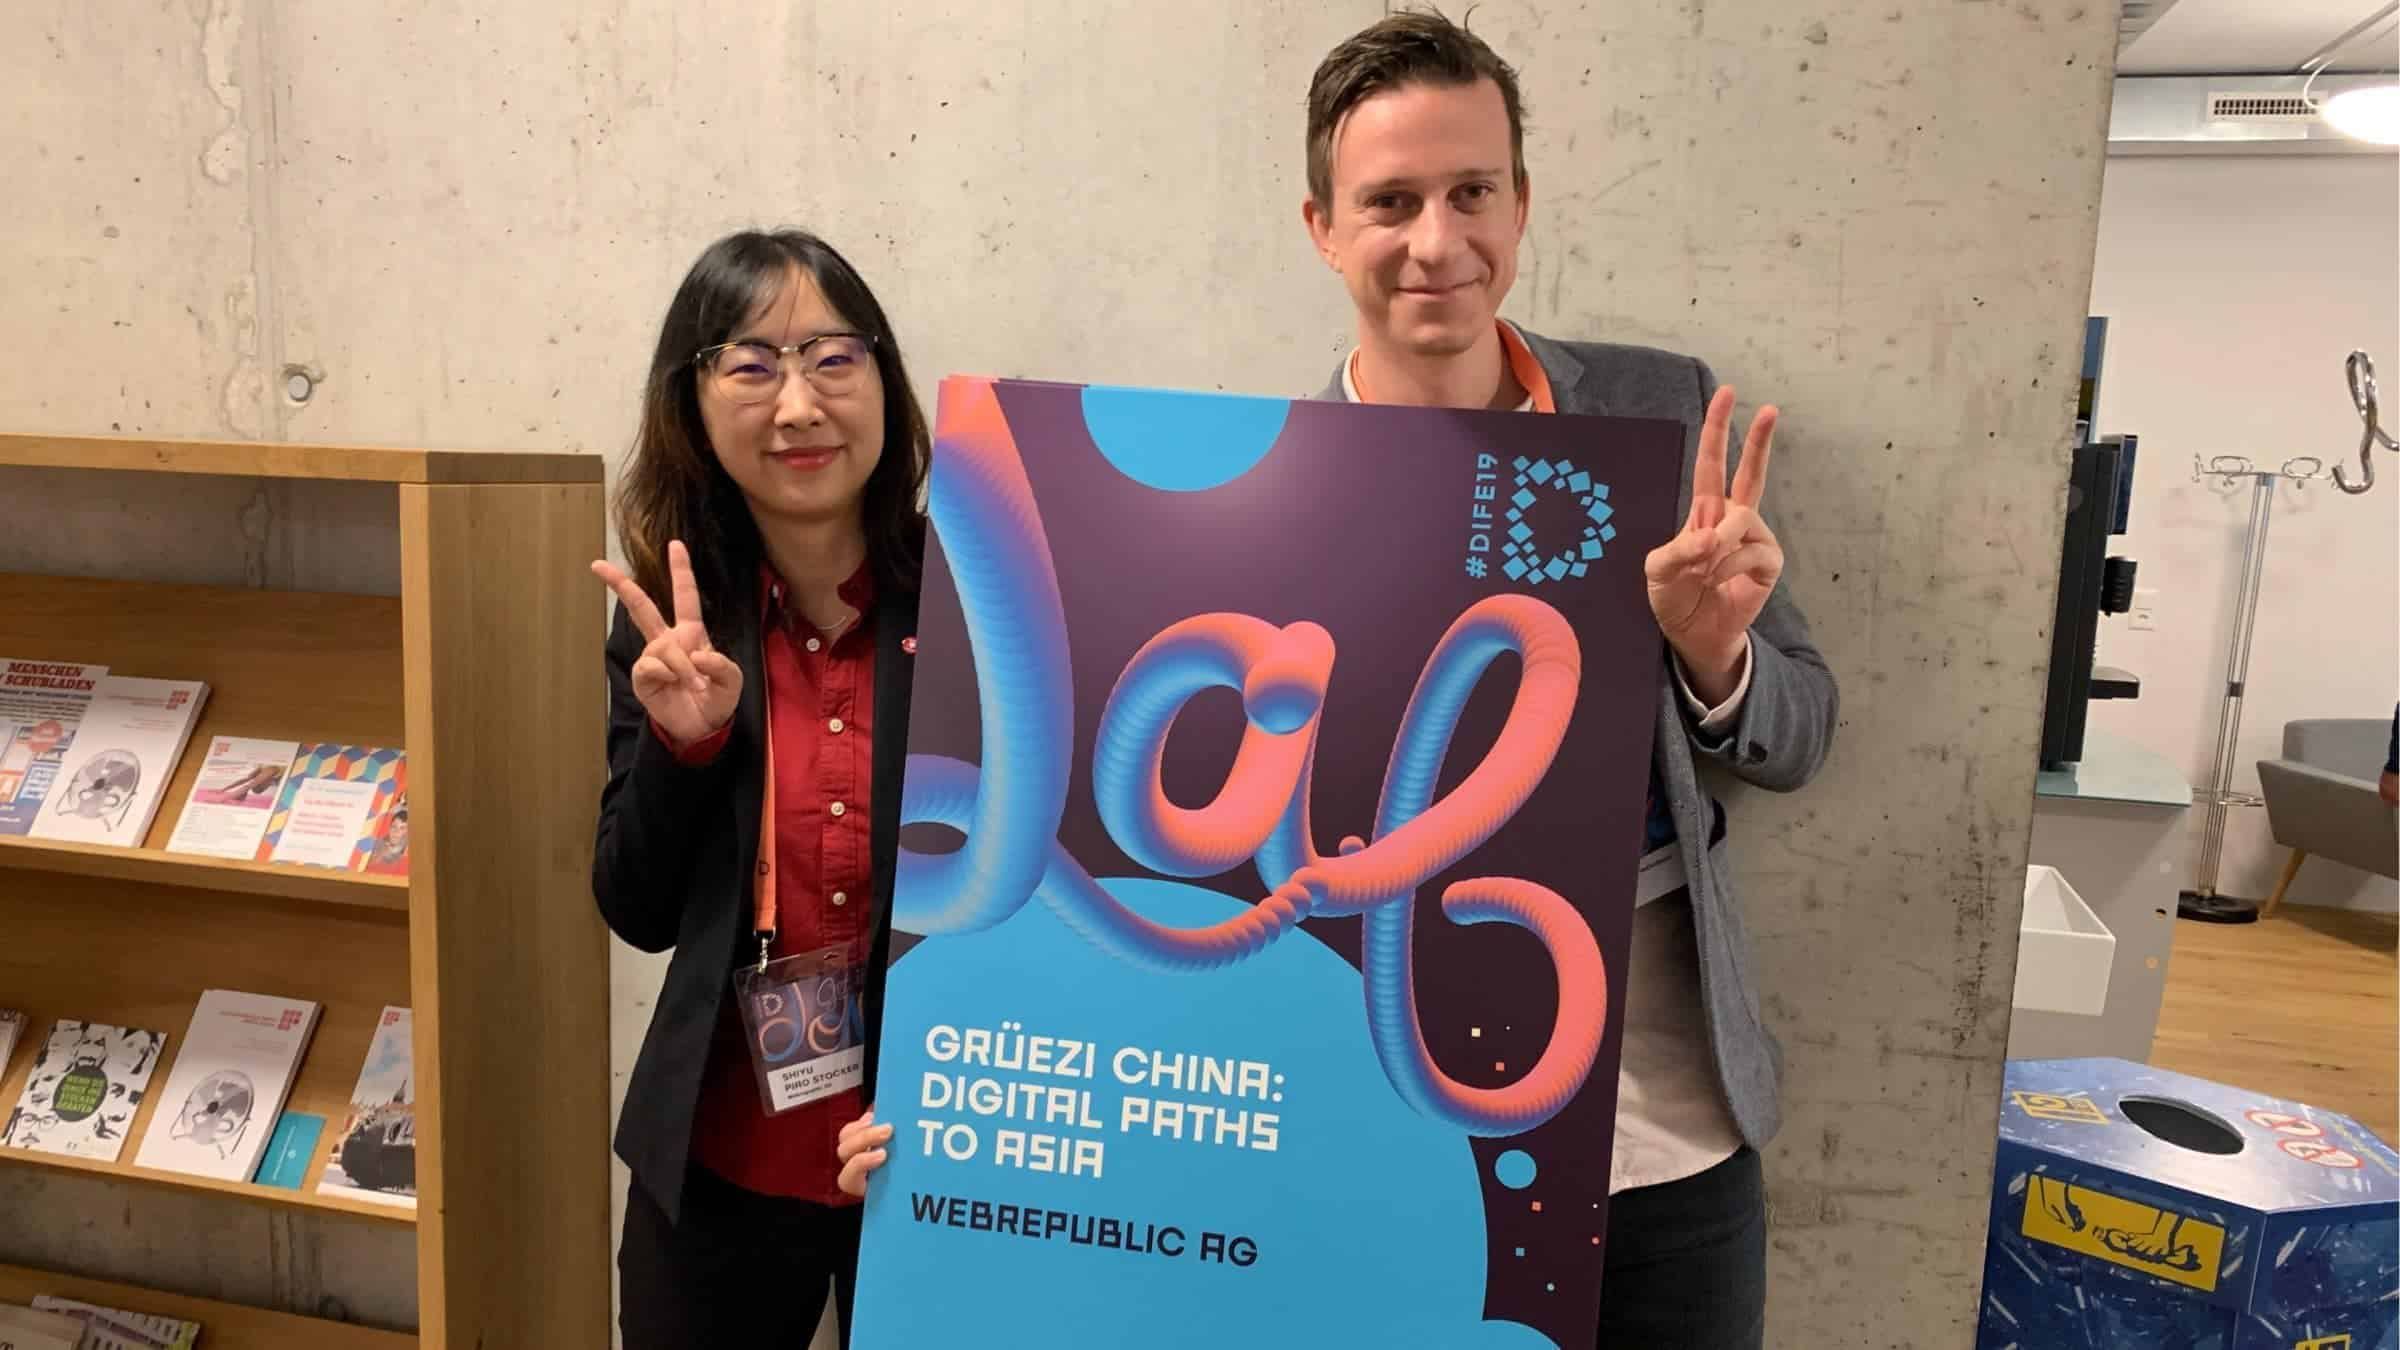 Digital-Festival-2019-Digital-Lab-Grueezi-China-Techgarage